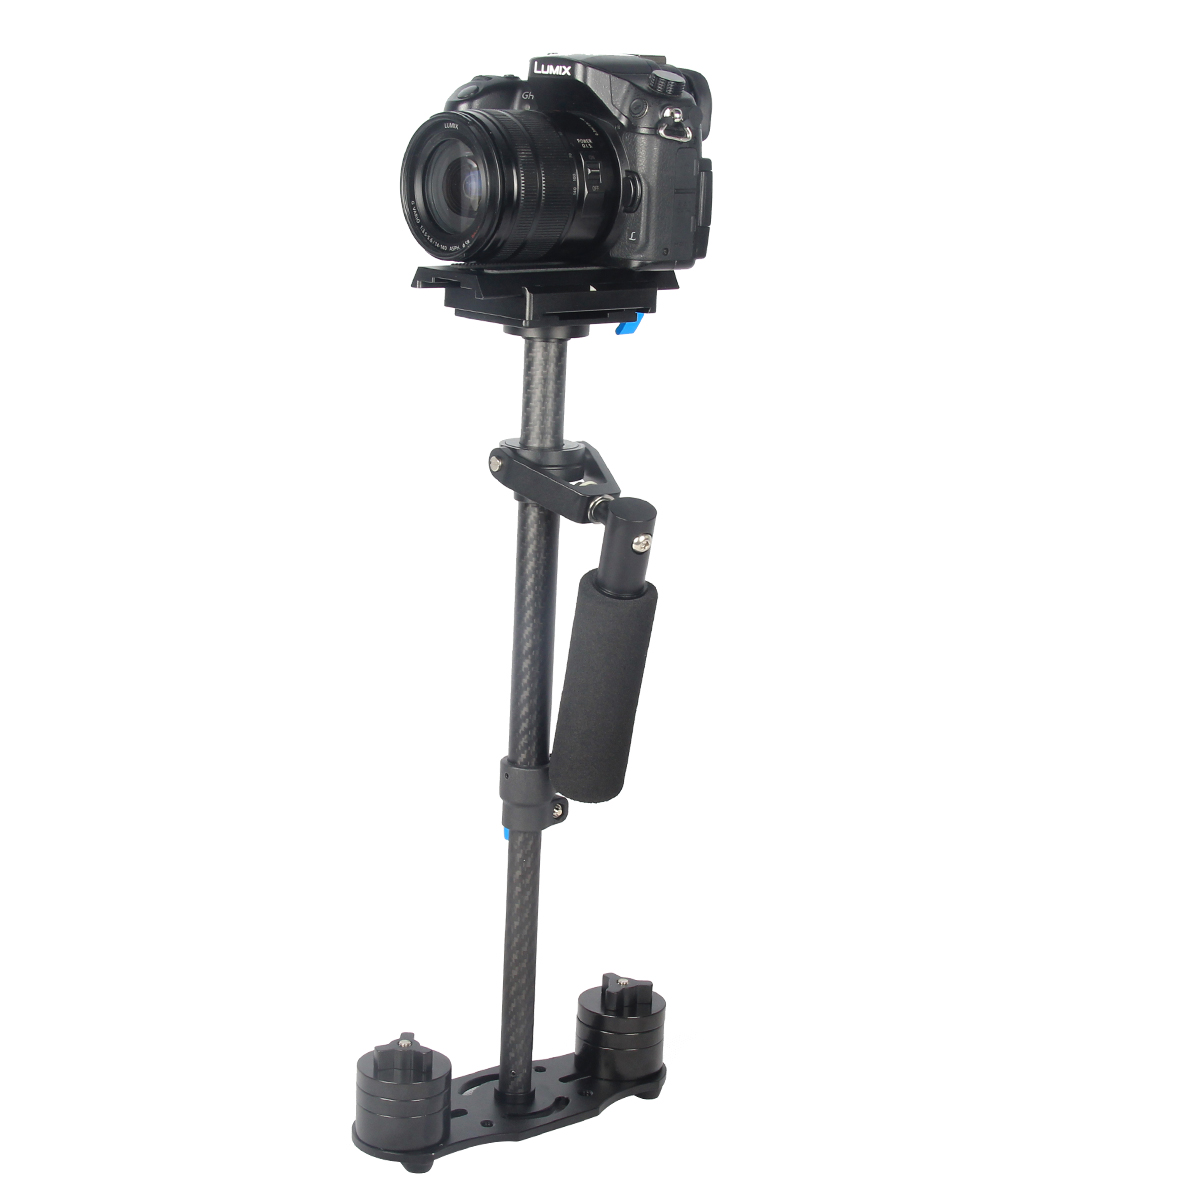 2015 YELANGU Filming Equipment Carbon Fiber Handheld DSLR Camera Stabilizer Steadicam For D5